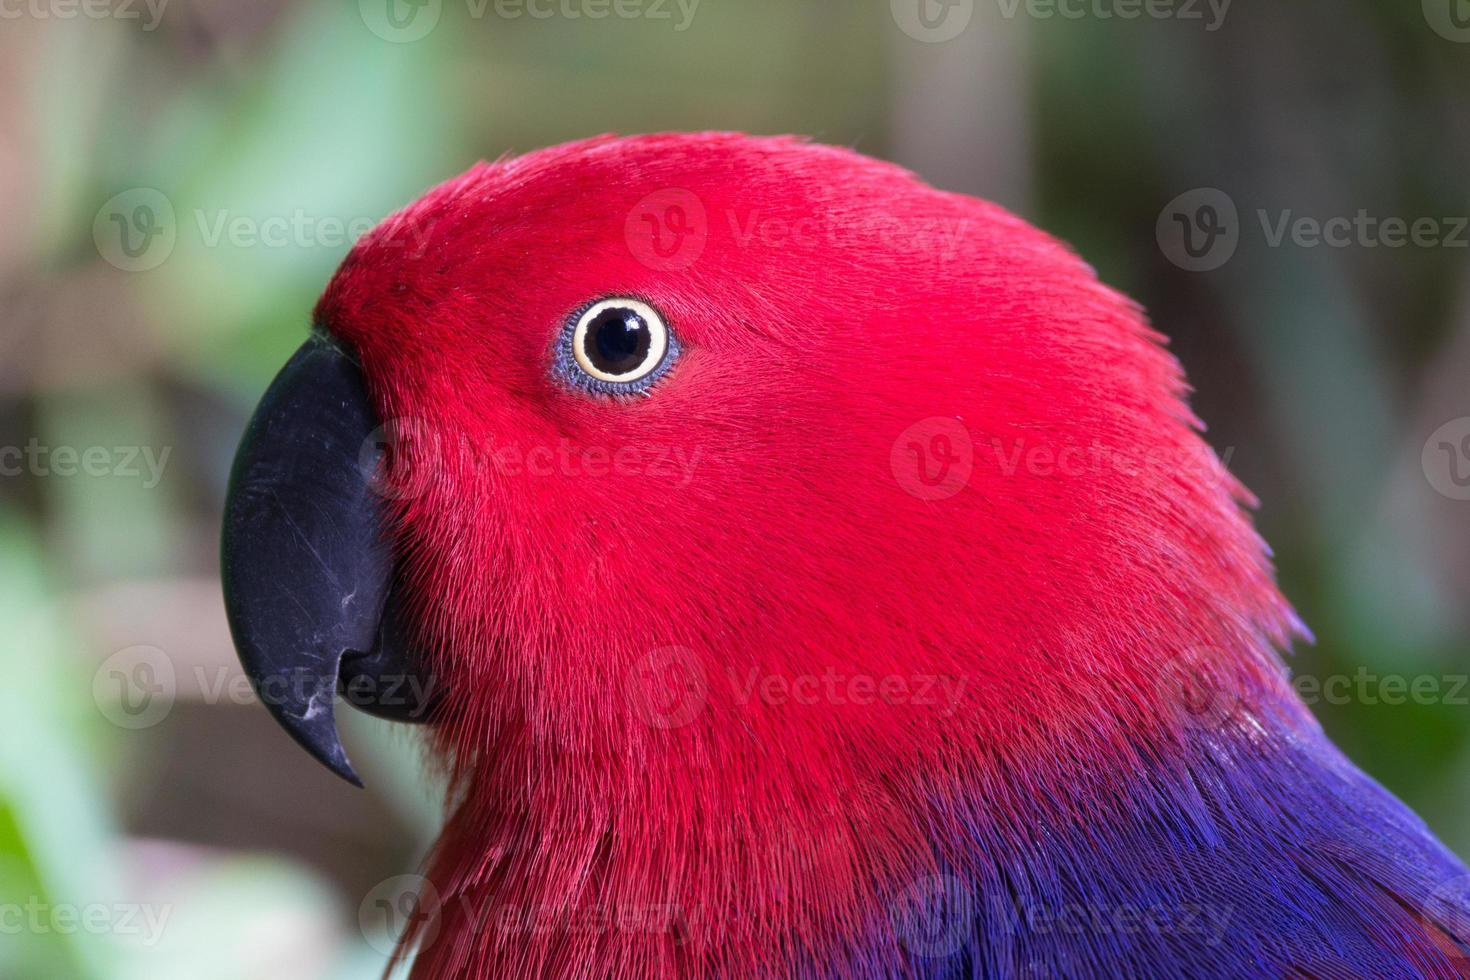 eclectus papegaai vrouwtje foto